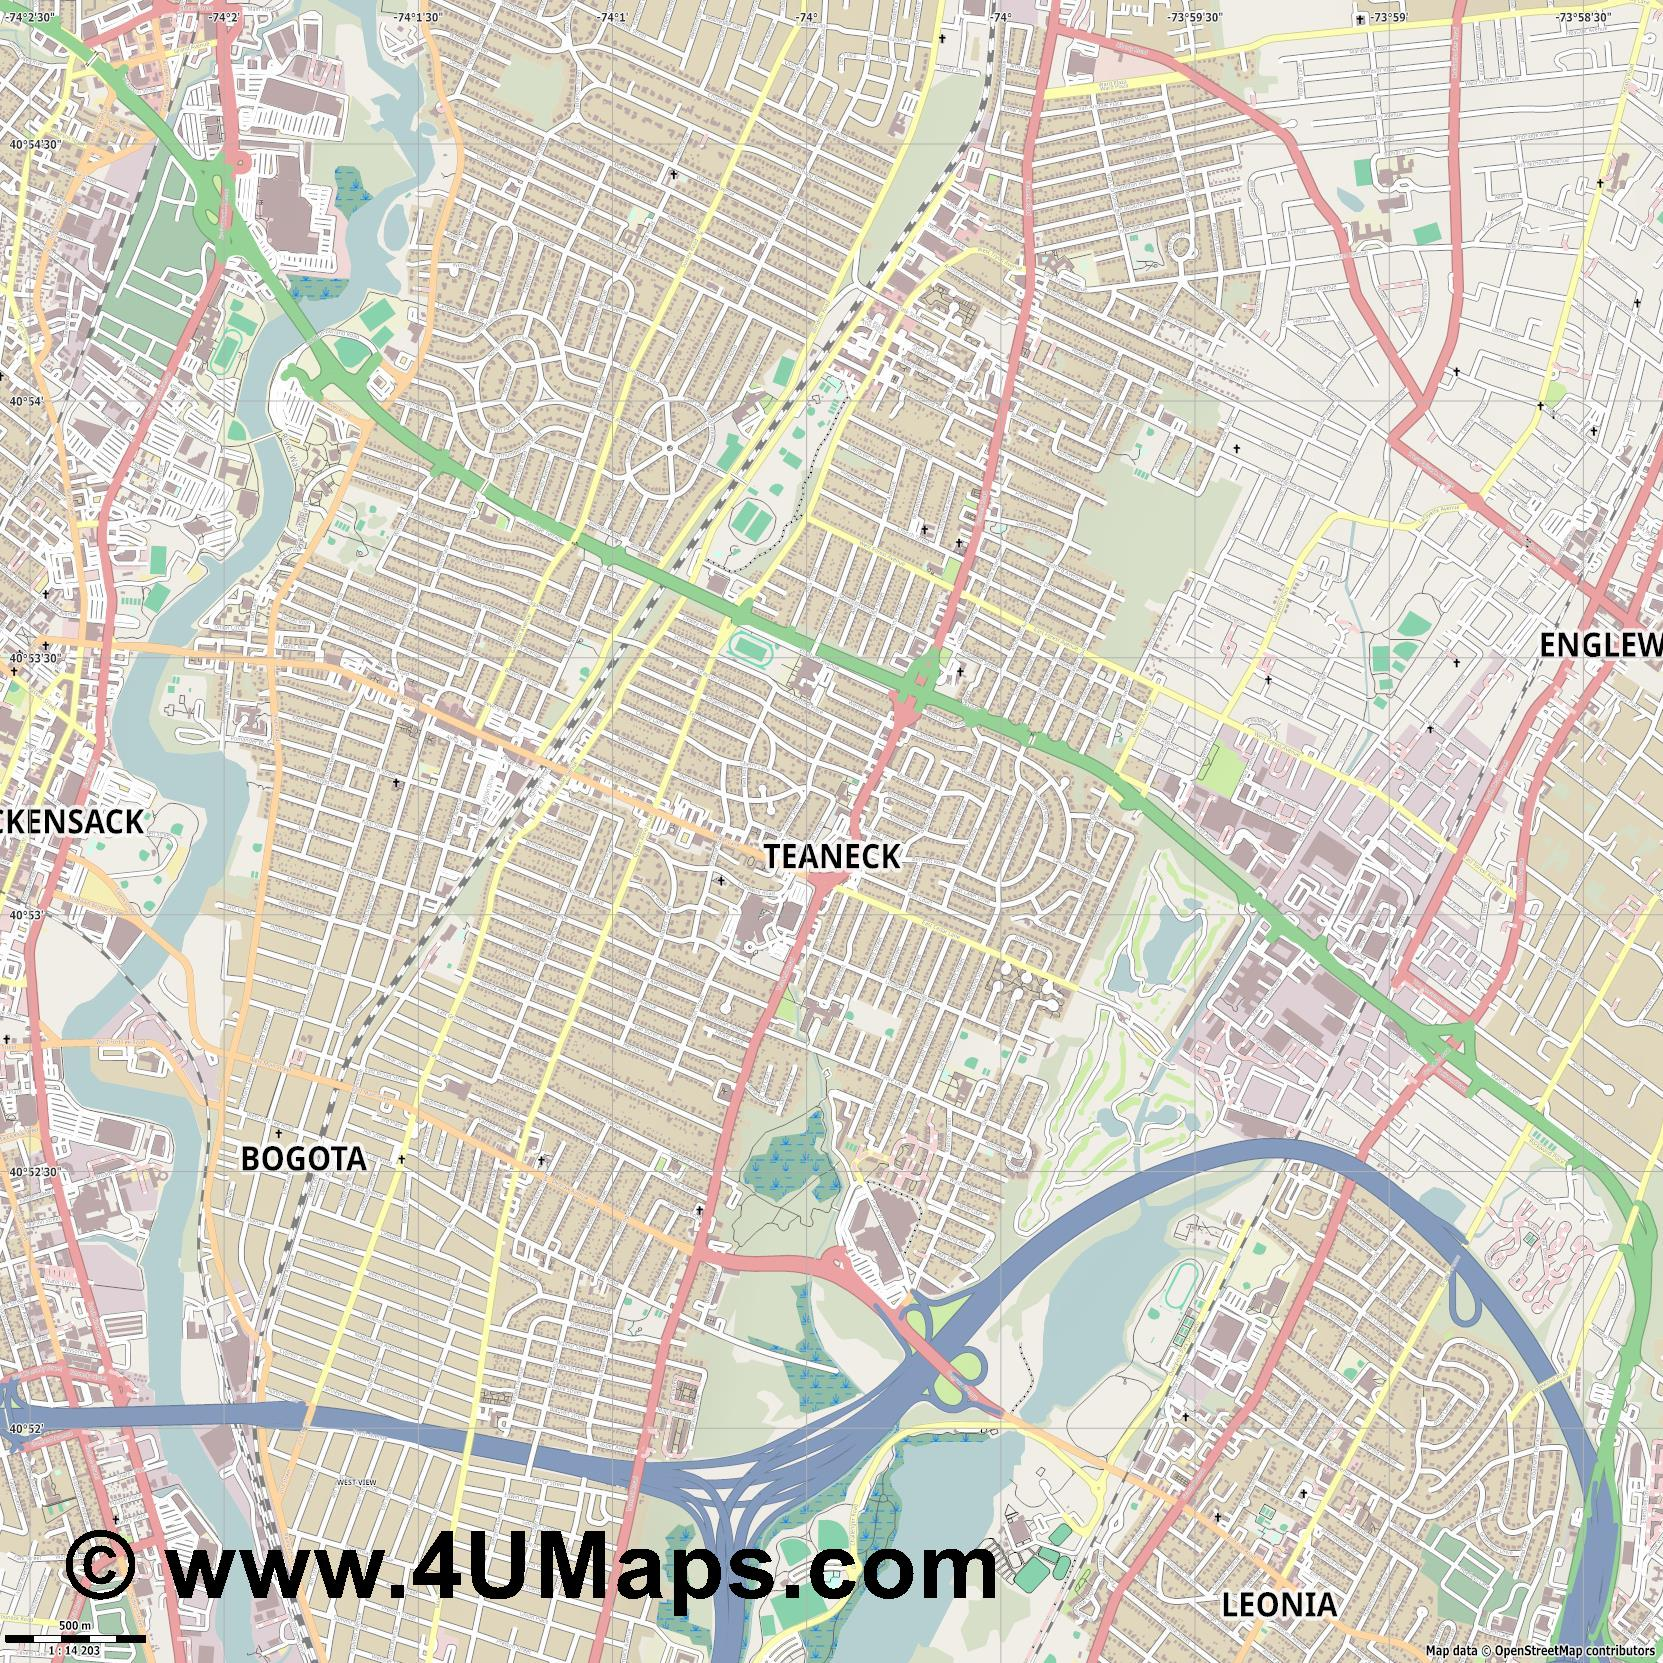 Teaneck  jpg ultra high detail preview vector city map